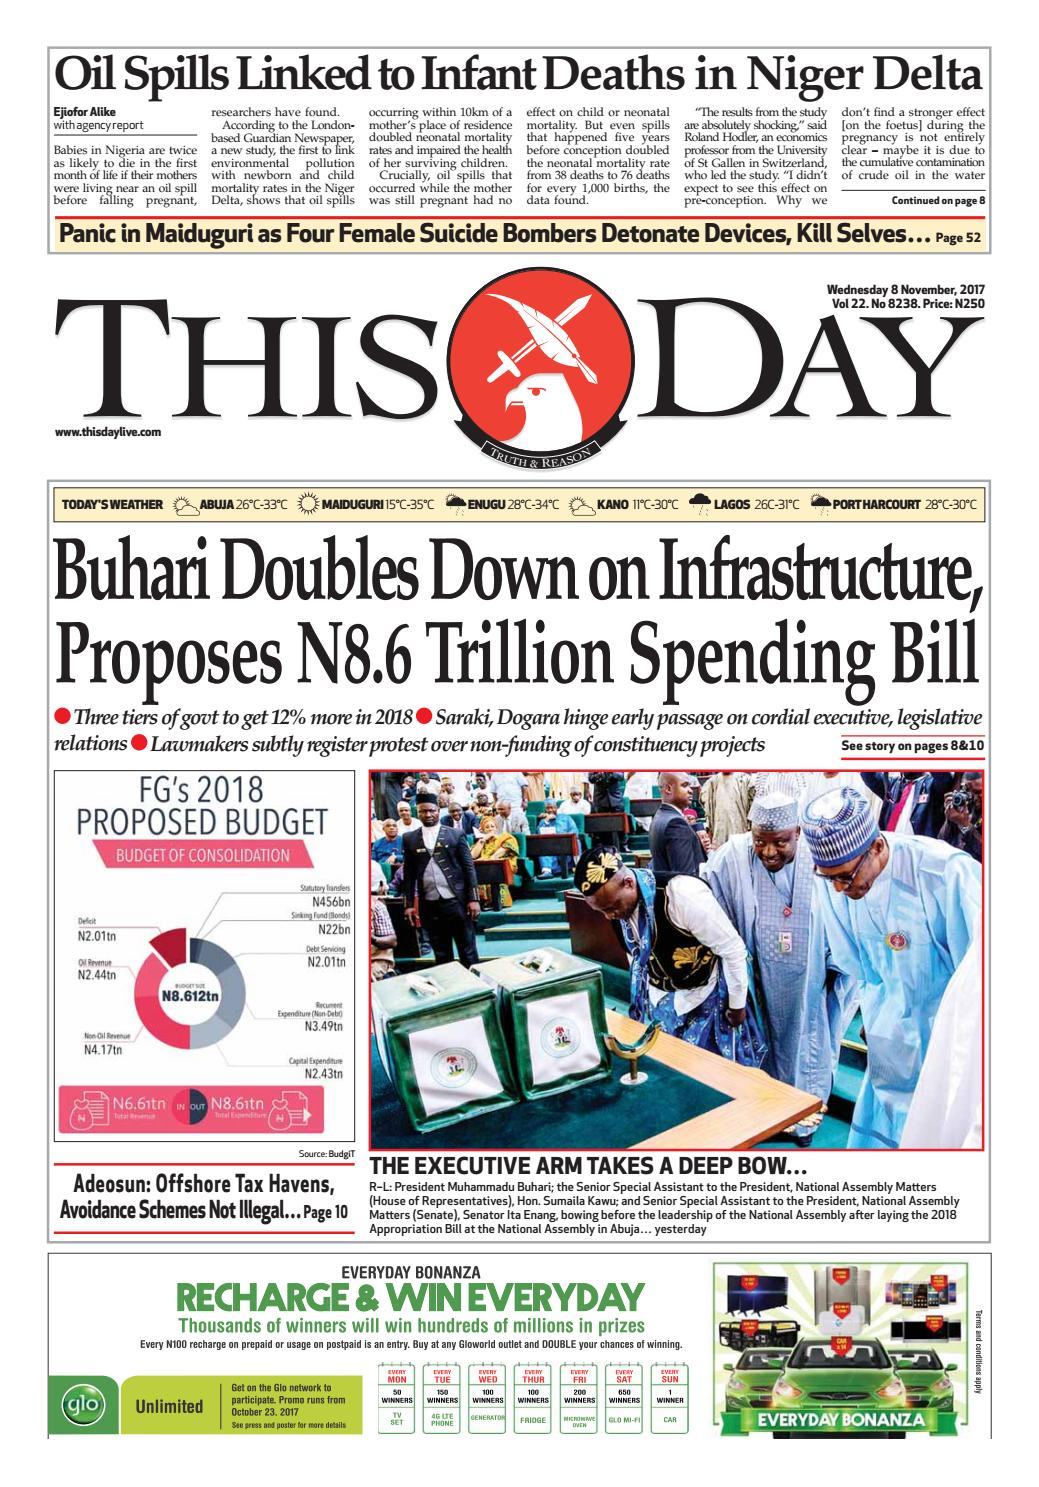 Wednesday 8th November 2017 by THISDAY Newspapers Ltd - issuu